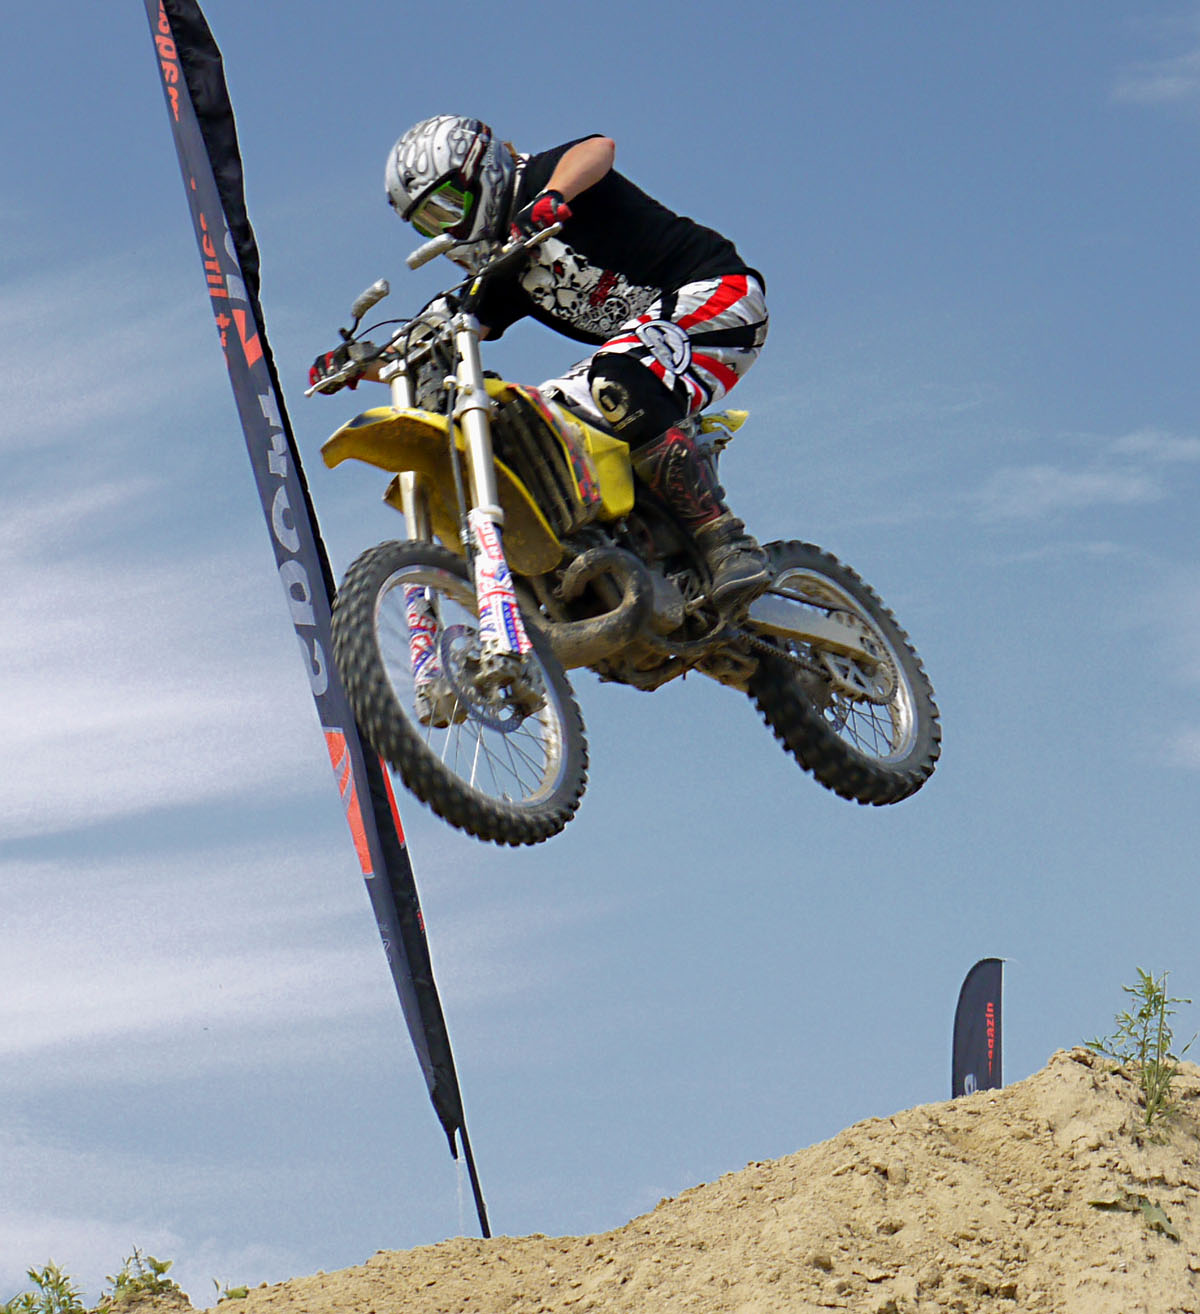 FMX: Freestyle Motocross in my home | GT-Rider Forums